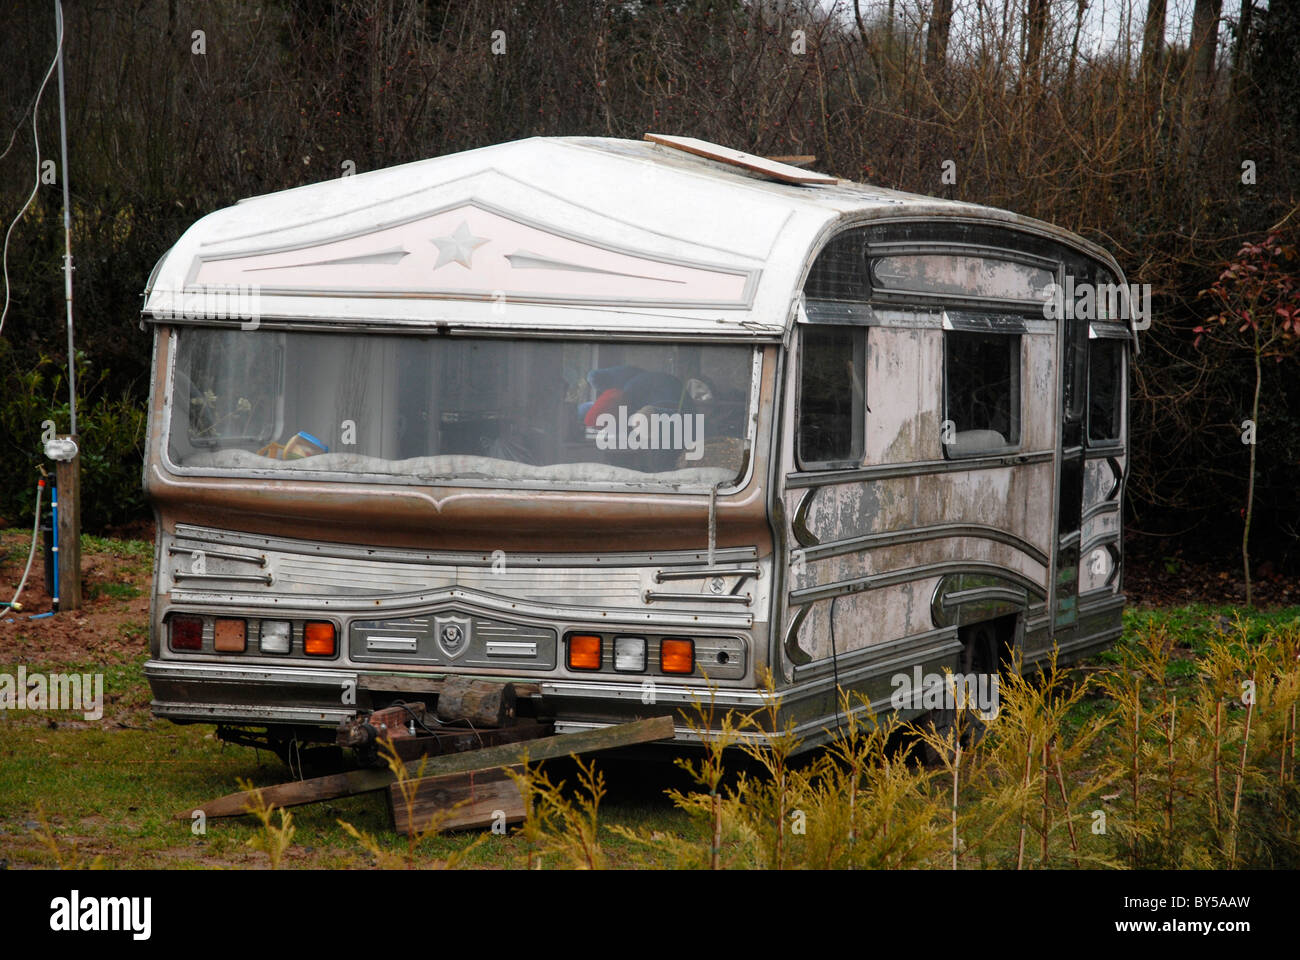 Traveller caravan awaiting restoration in a traveller site at Meriden UK. - Stock Image